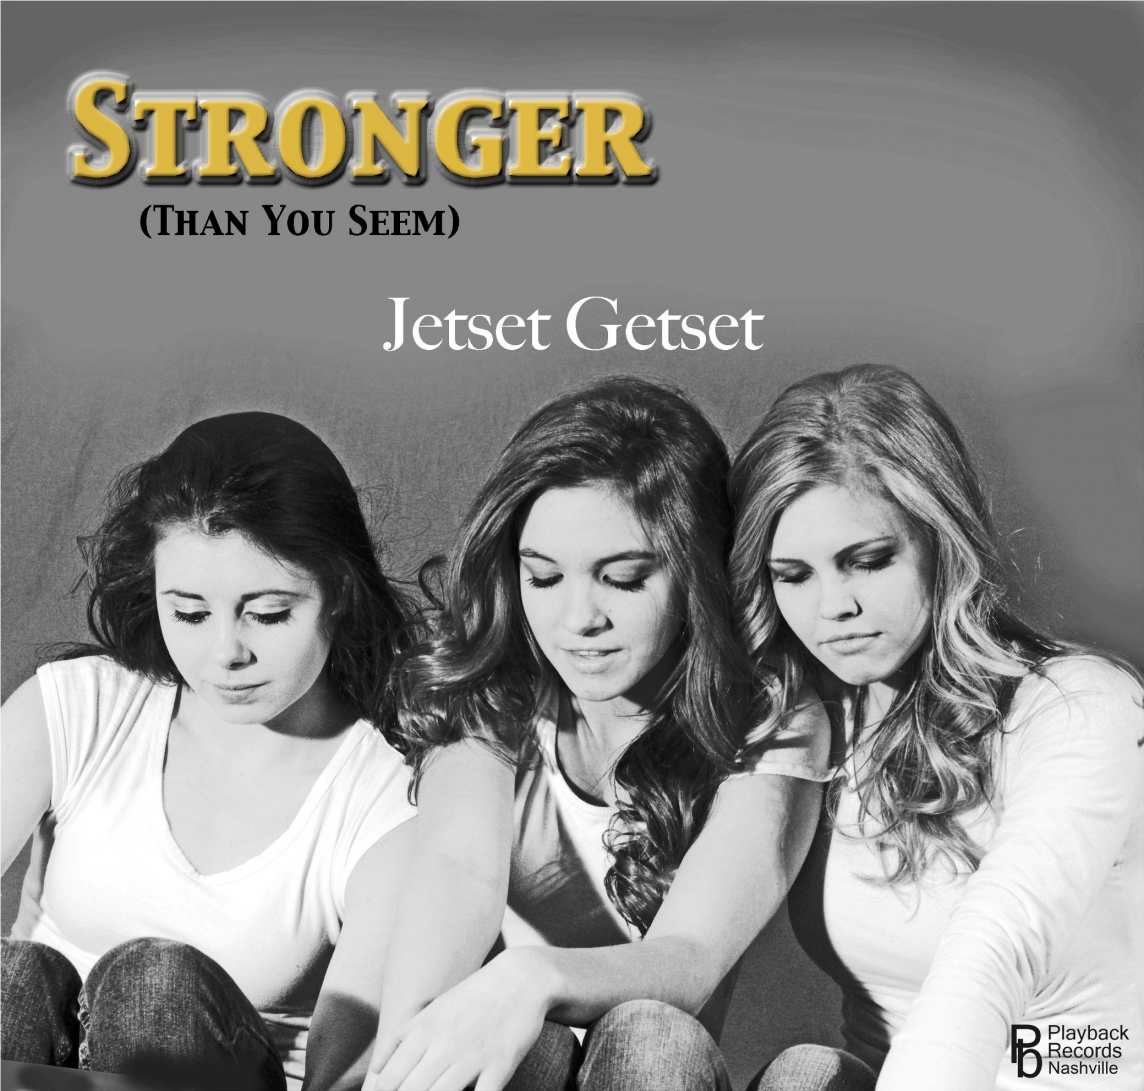 """Stronger (Than You Seem)"" is the new single from teen band JETSET GETSET."